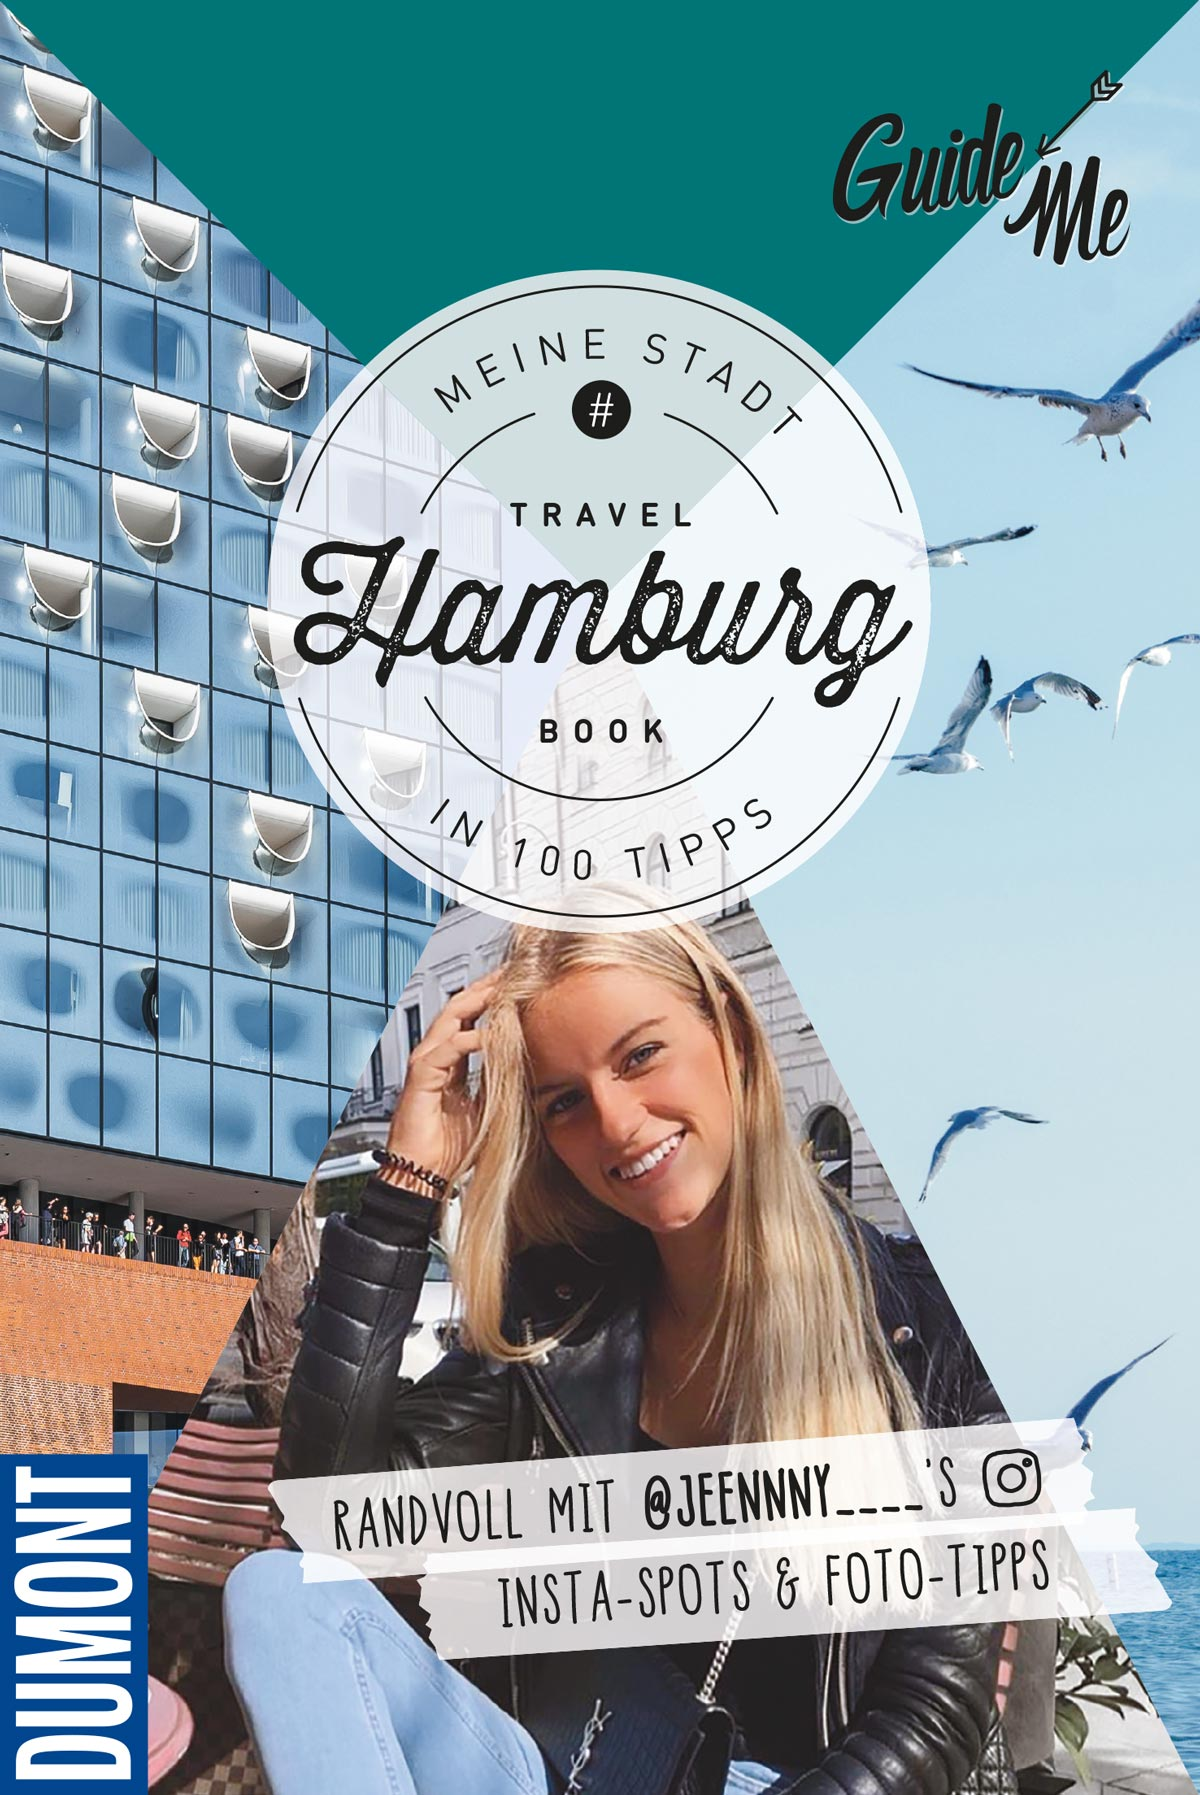 GuideMe TravelBook «Hamburg»